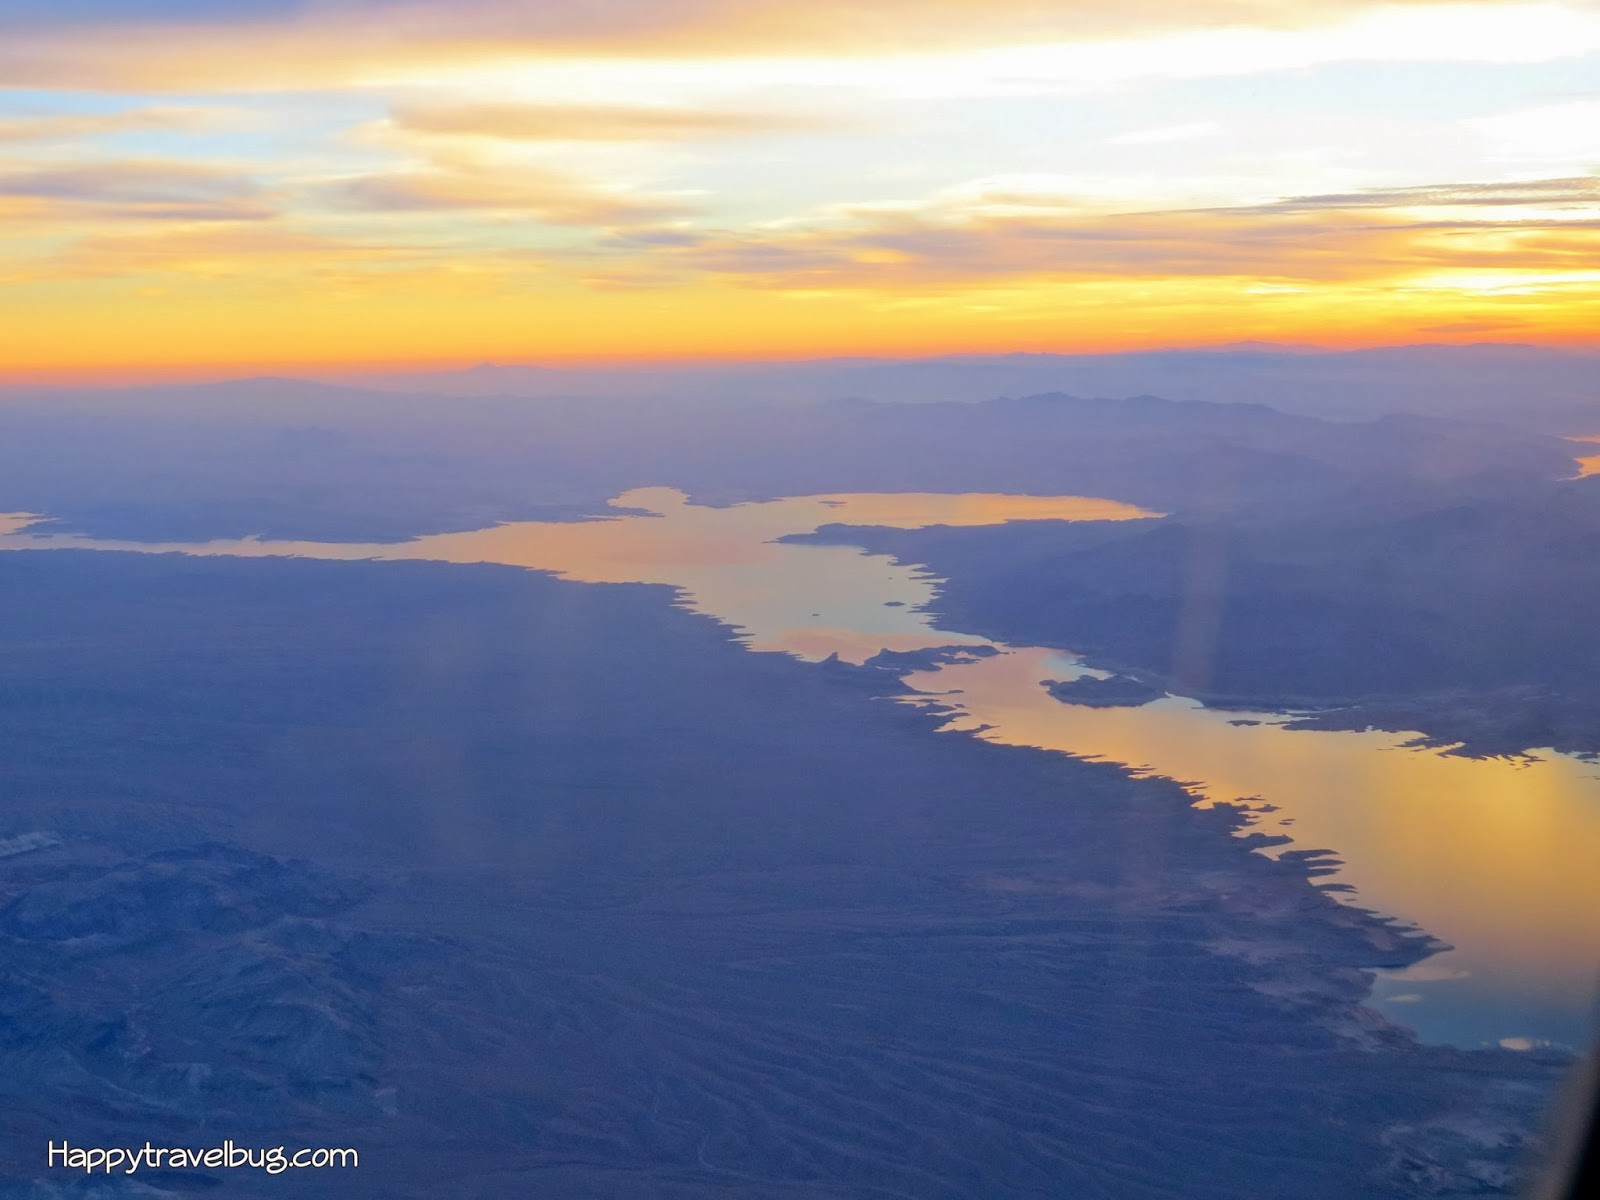 A lake and sunset as seen from my airplane window...Happytravelbug.com